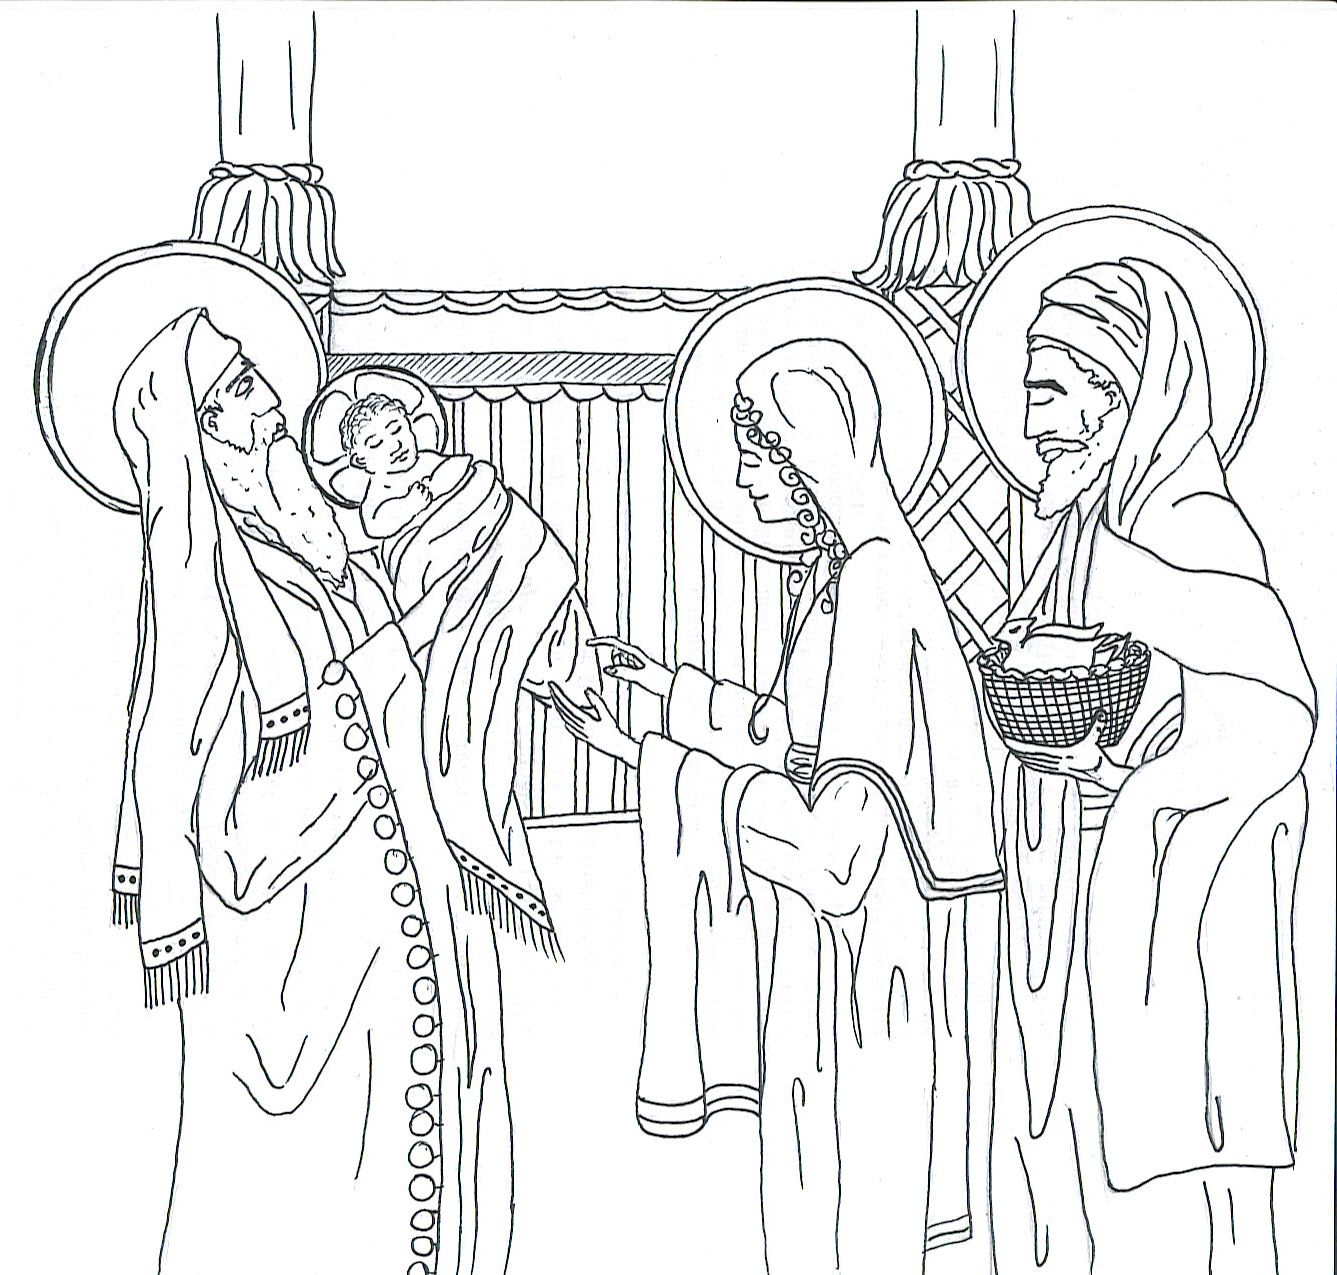 Free Coloring Page Feast Of The Purification Our Lady Presentation Lord